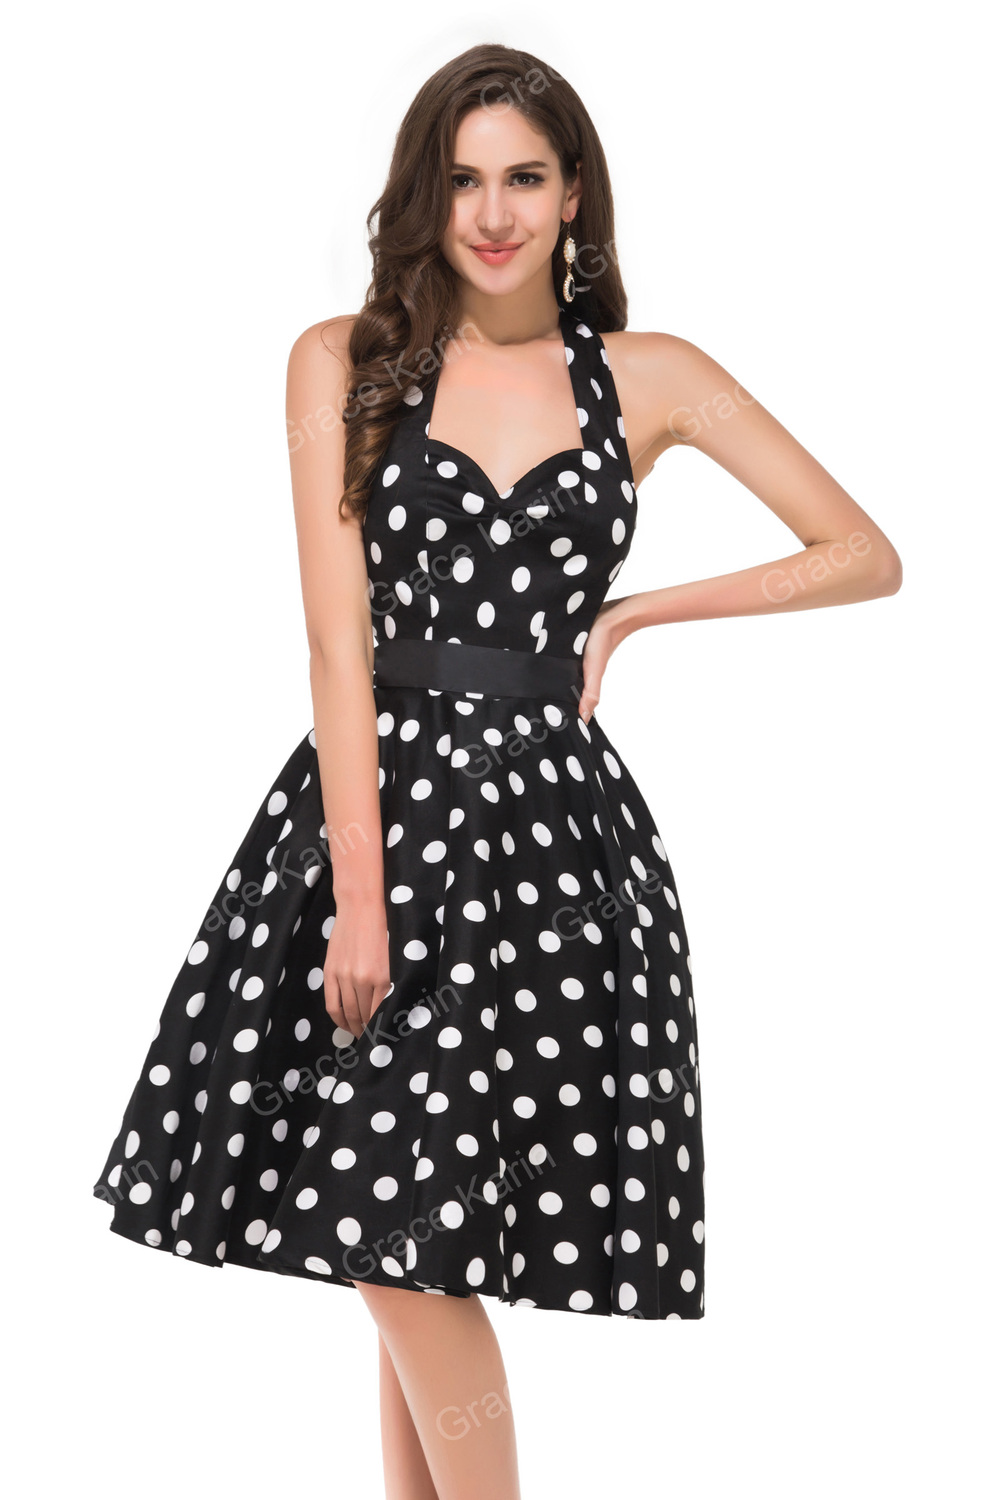 Grace Karin Retro Style Cotton 50s Polka Dots Dress 1950s